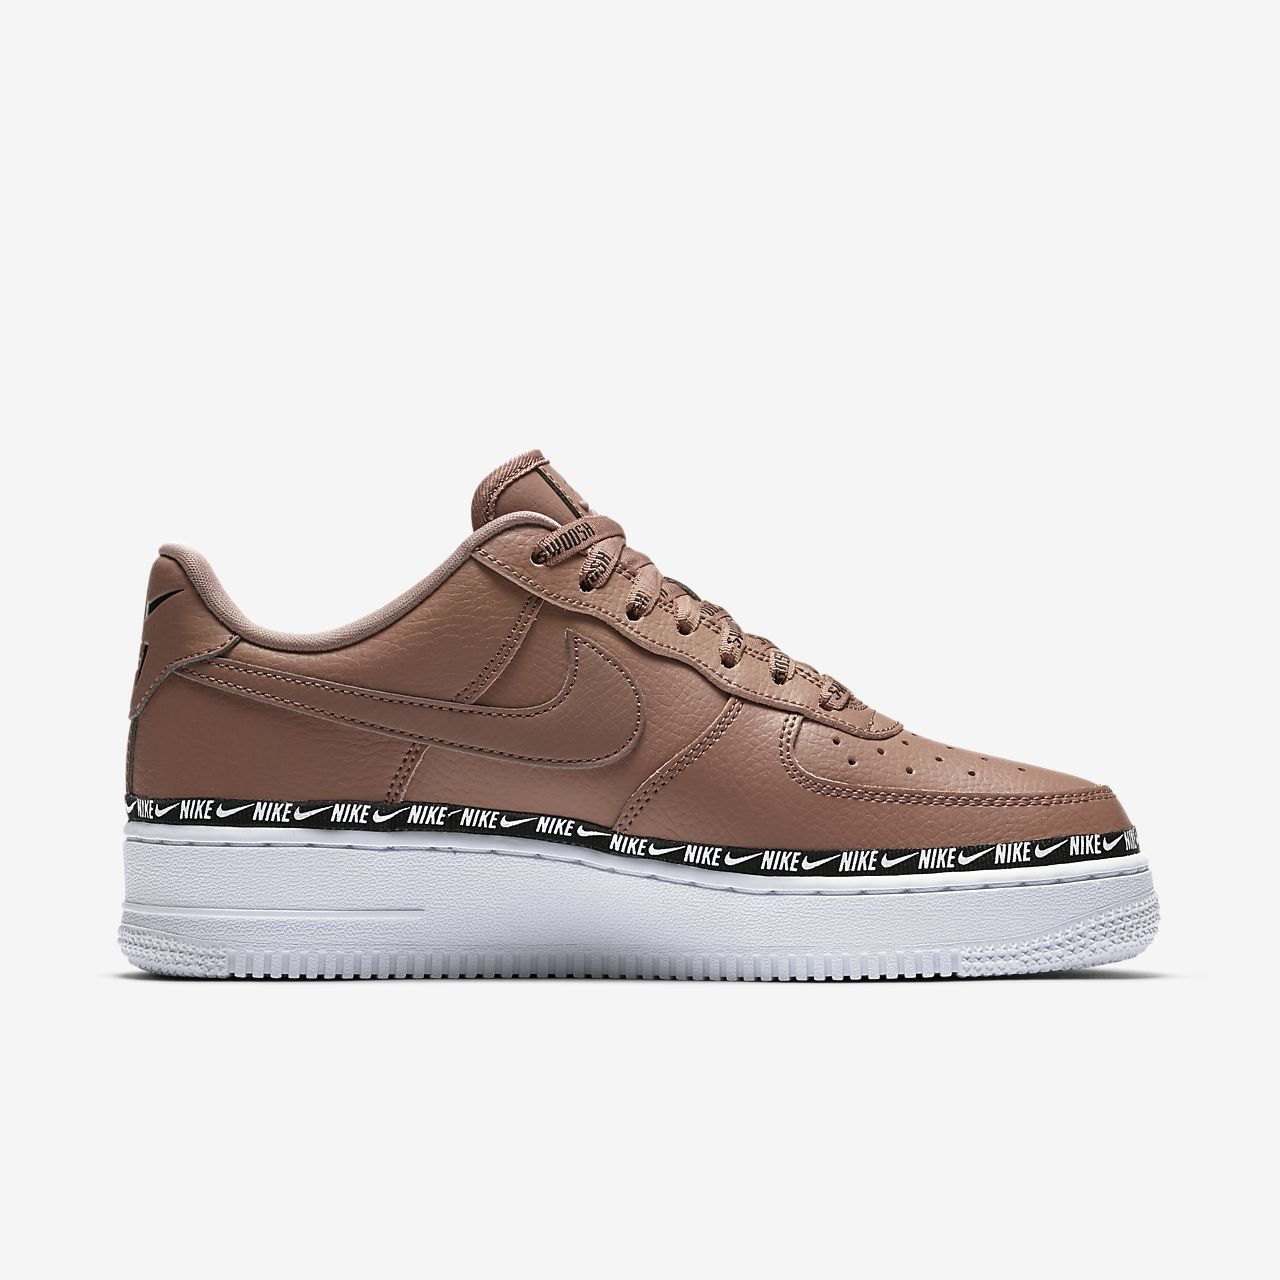 low priced a8d47 ee4e2 ... Nike Air Force 1 07 SE Premium Womens Shoe